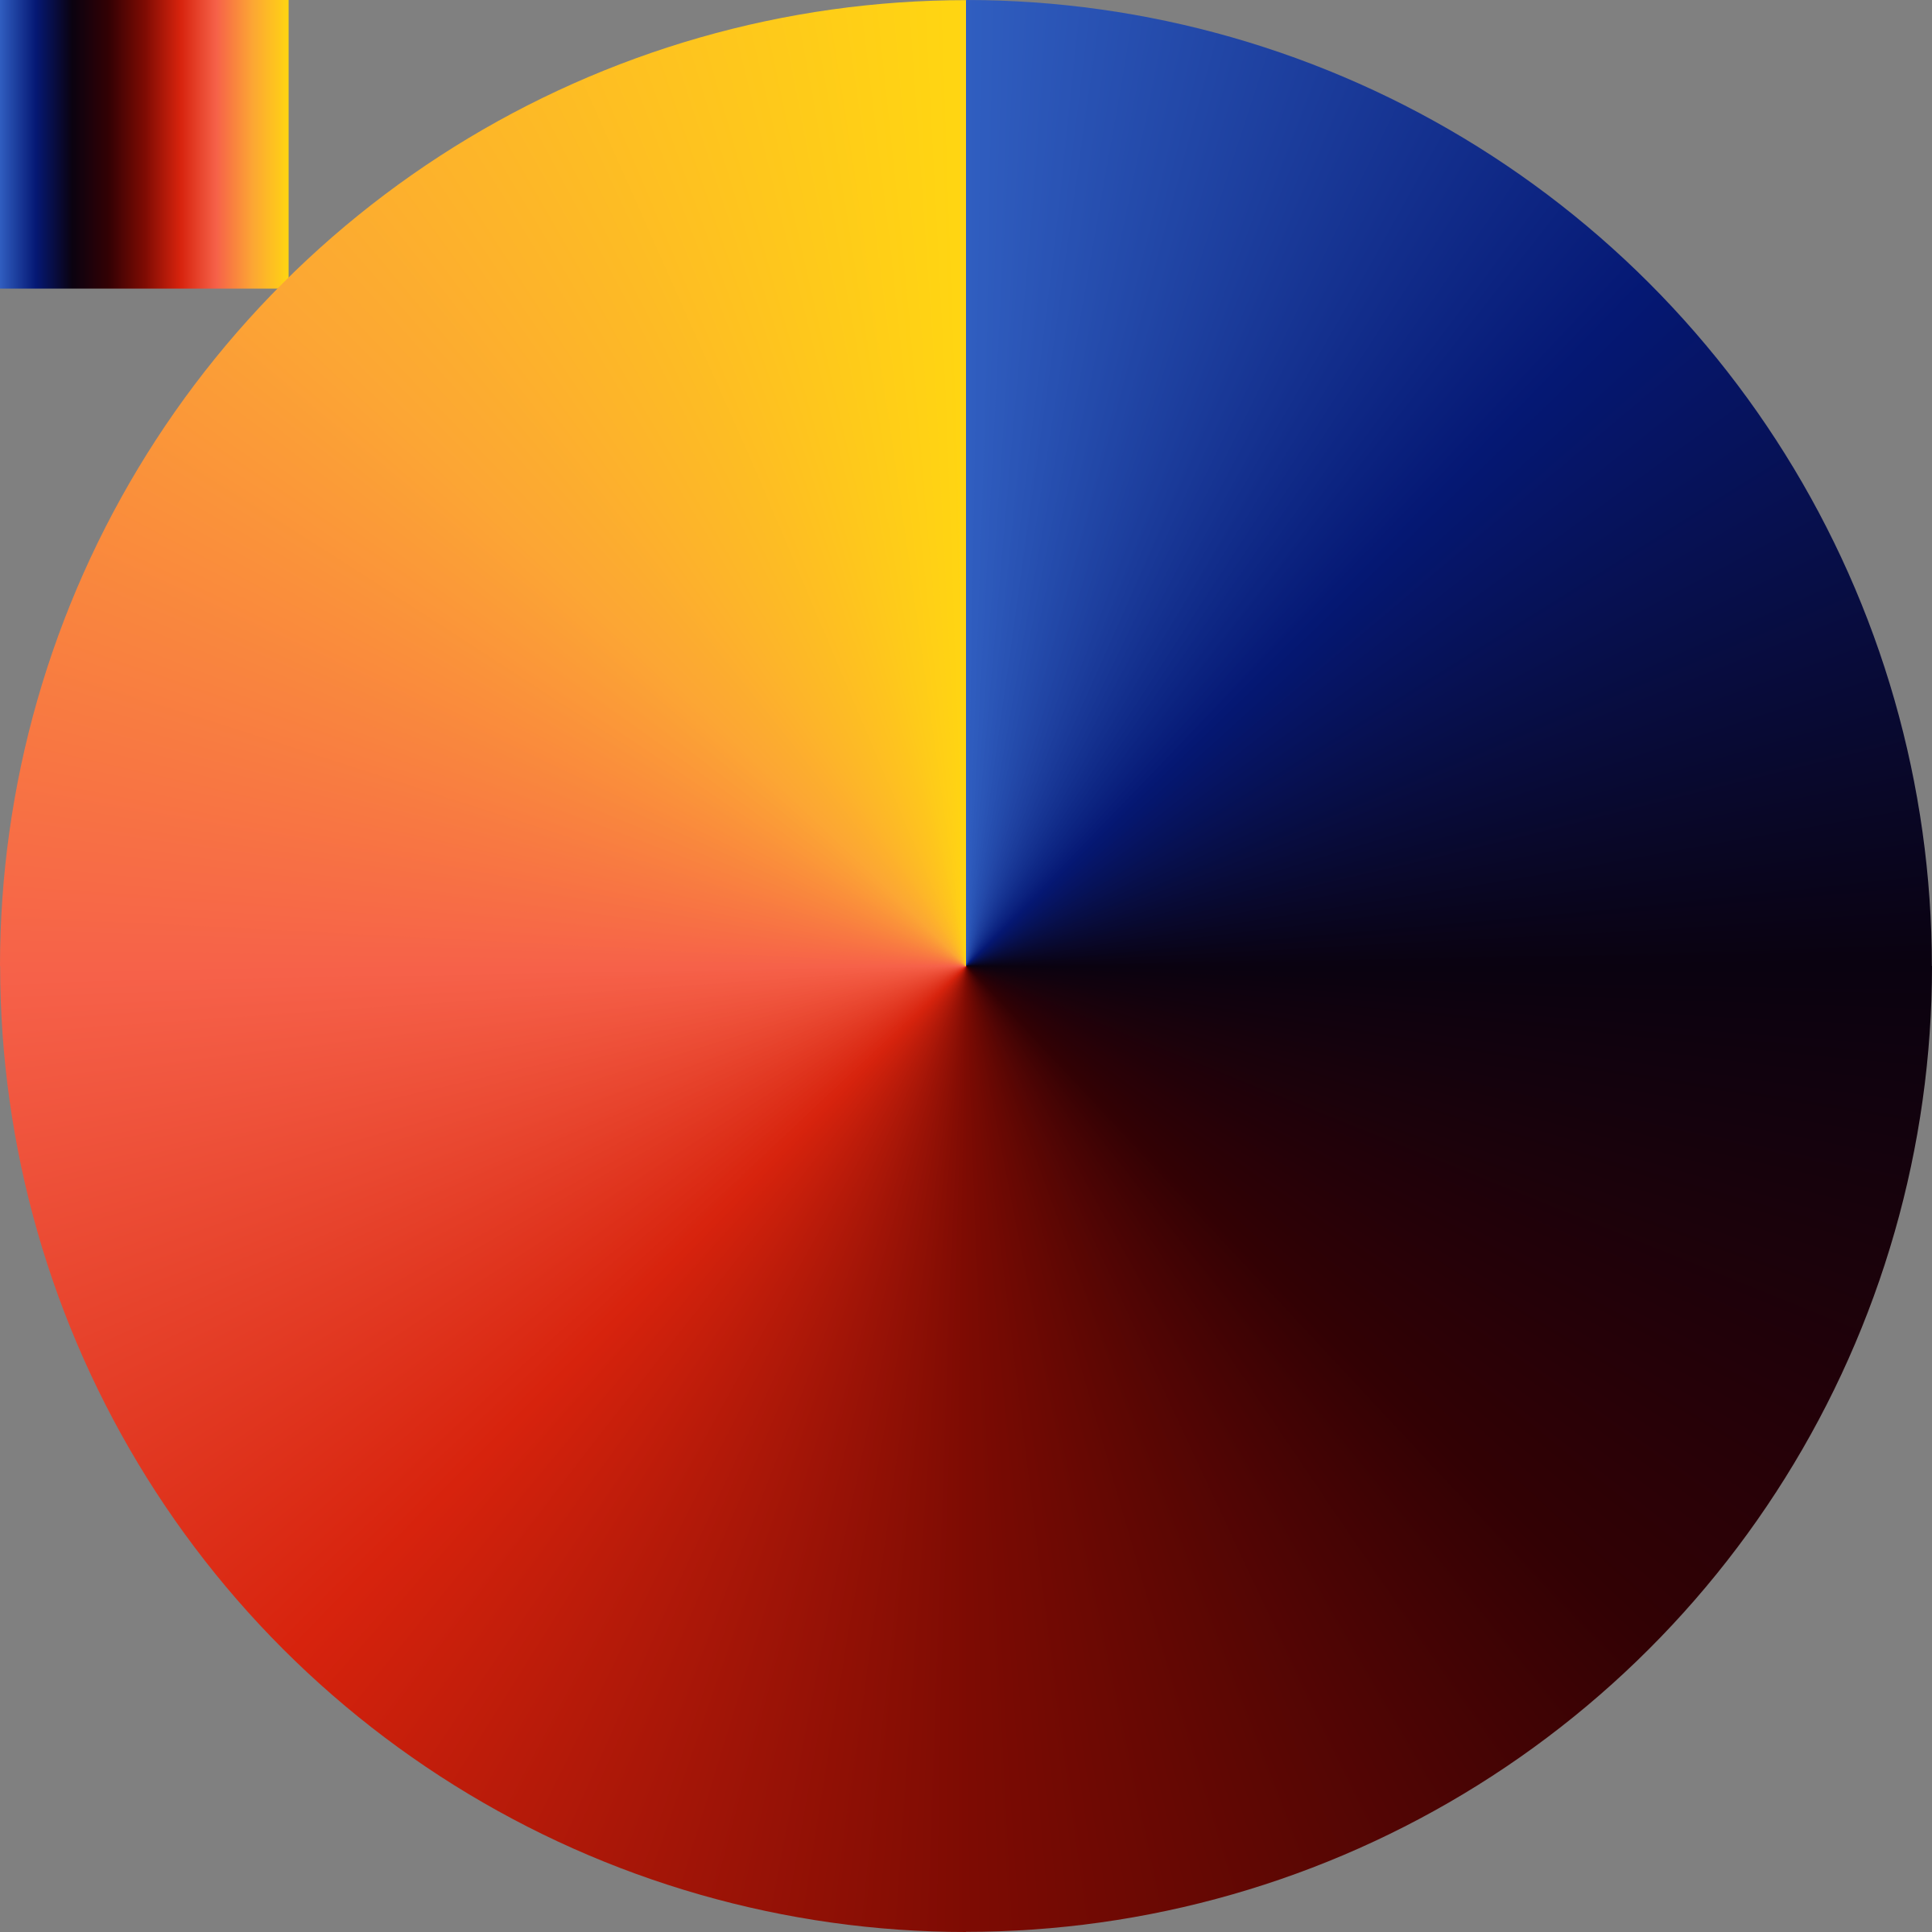 gradient corrected by Lazur URH